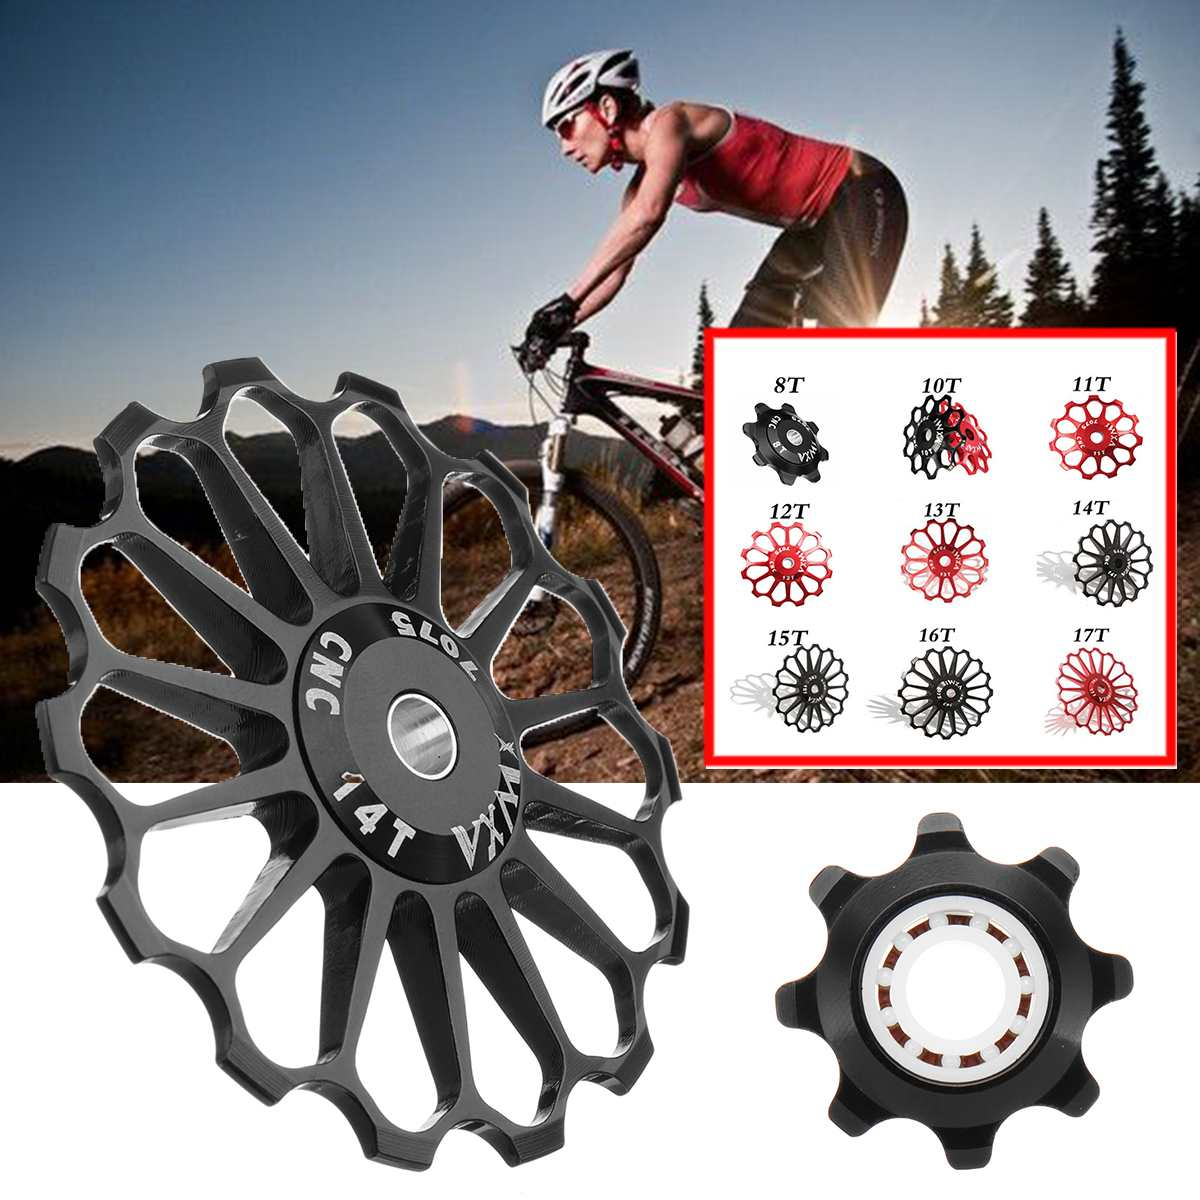 Bicycle 16T 14T 15T 17T Jockey Wheel Pulley MTB Bike Rear Derailleur Bearing CNC